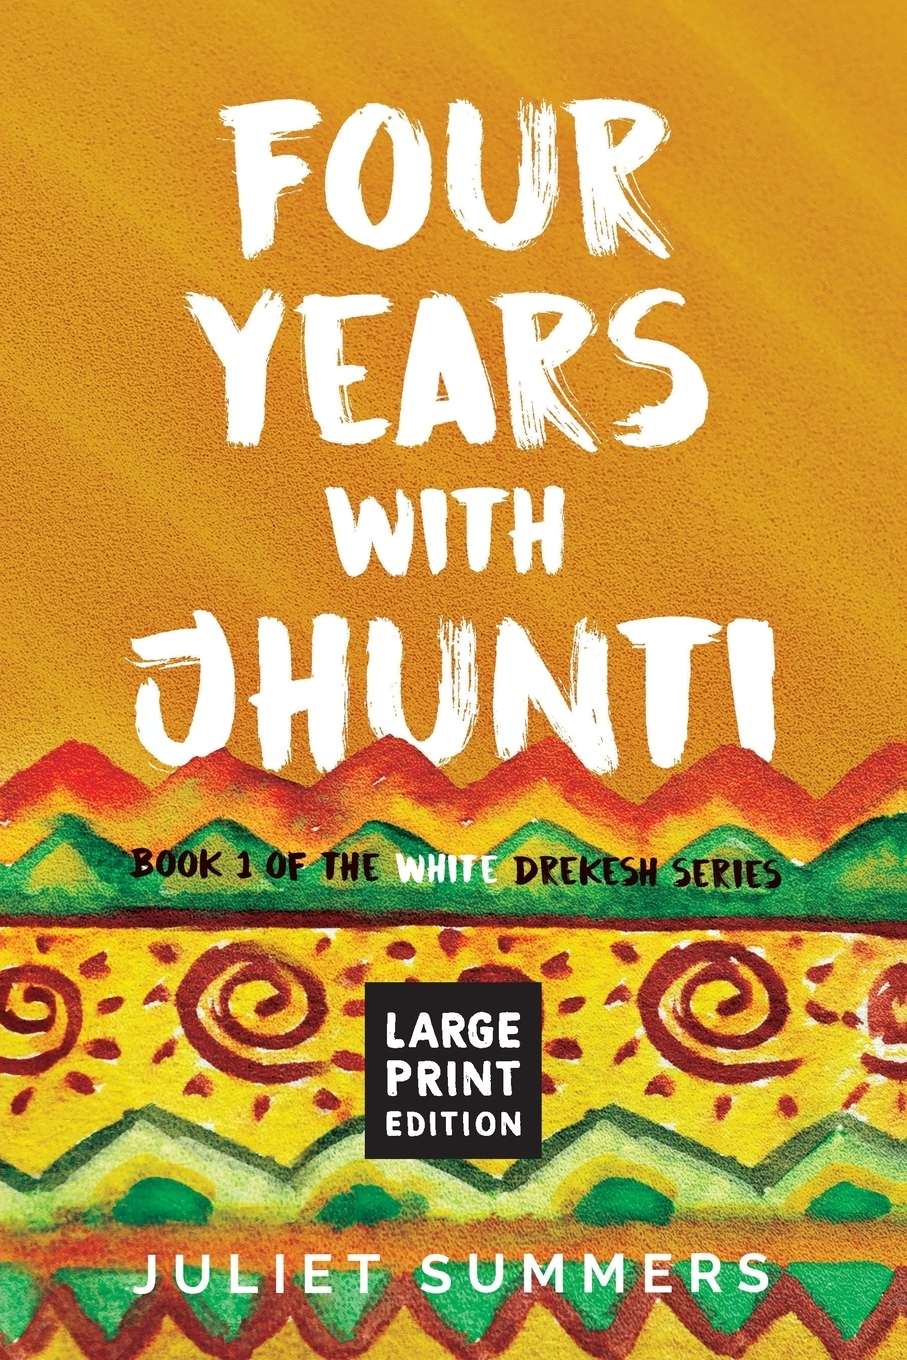 Juliet Summers. Four Years with Jhunti. Large Print Edition